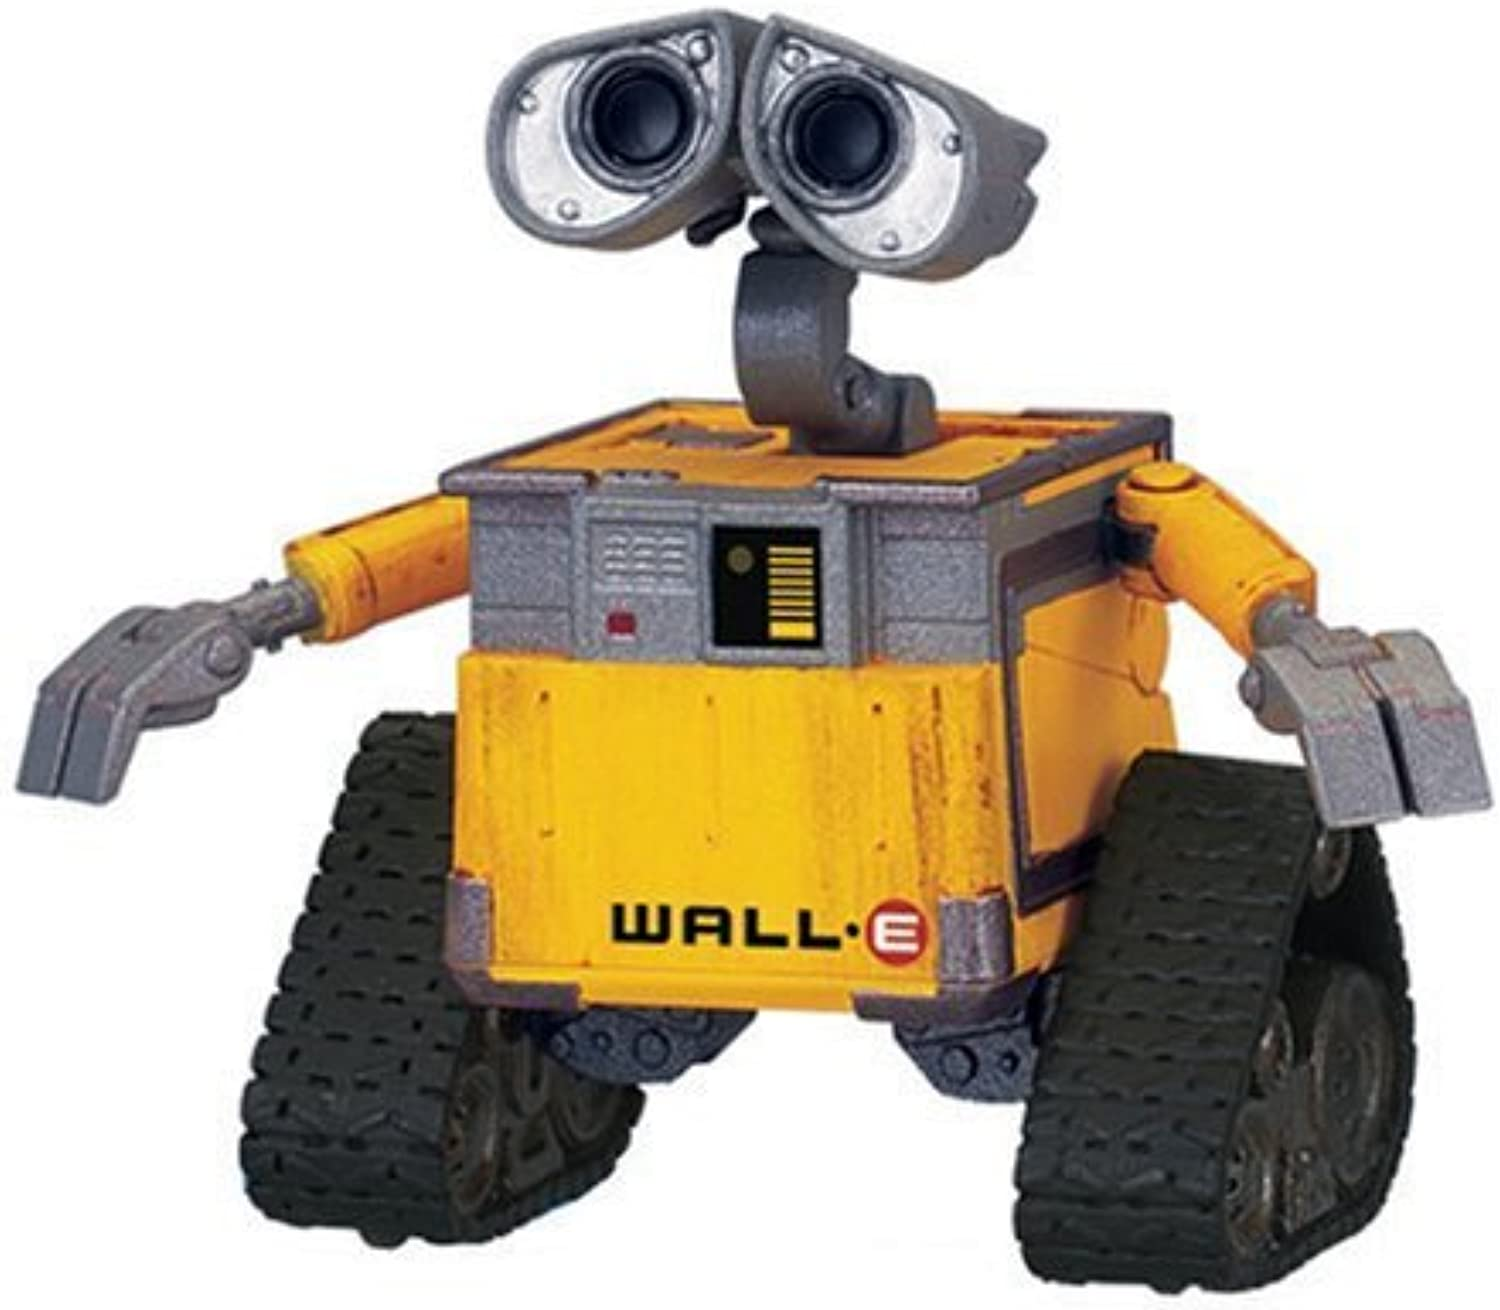 precios razonables Disney Pixar Pixar Pixar WALL-E Movie Figura Old WALLE by Disney  preferente